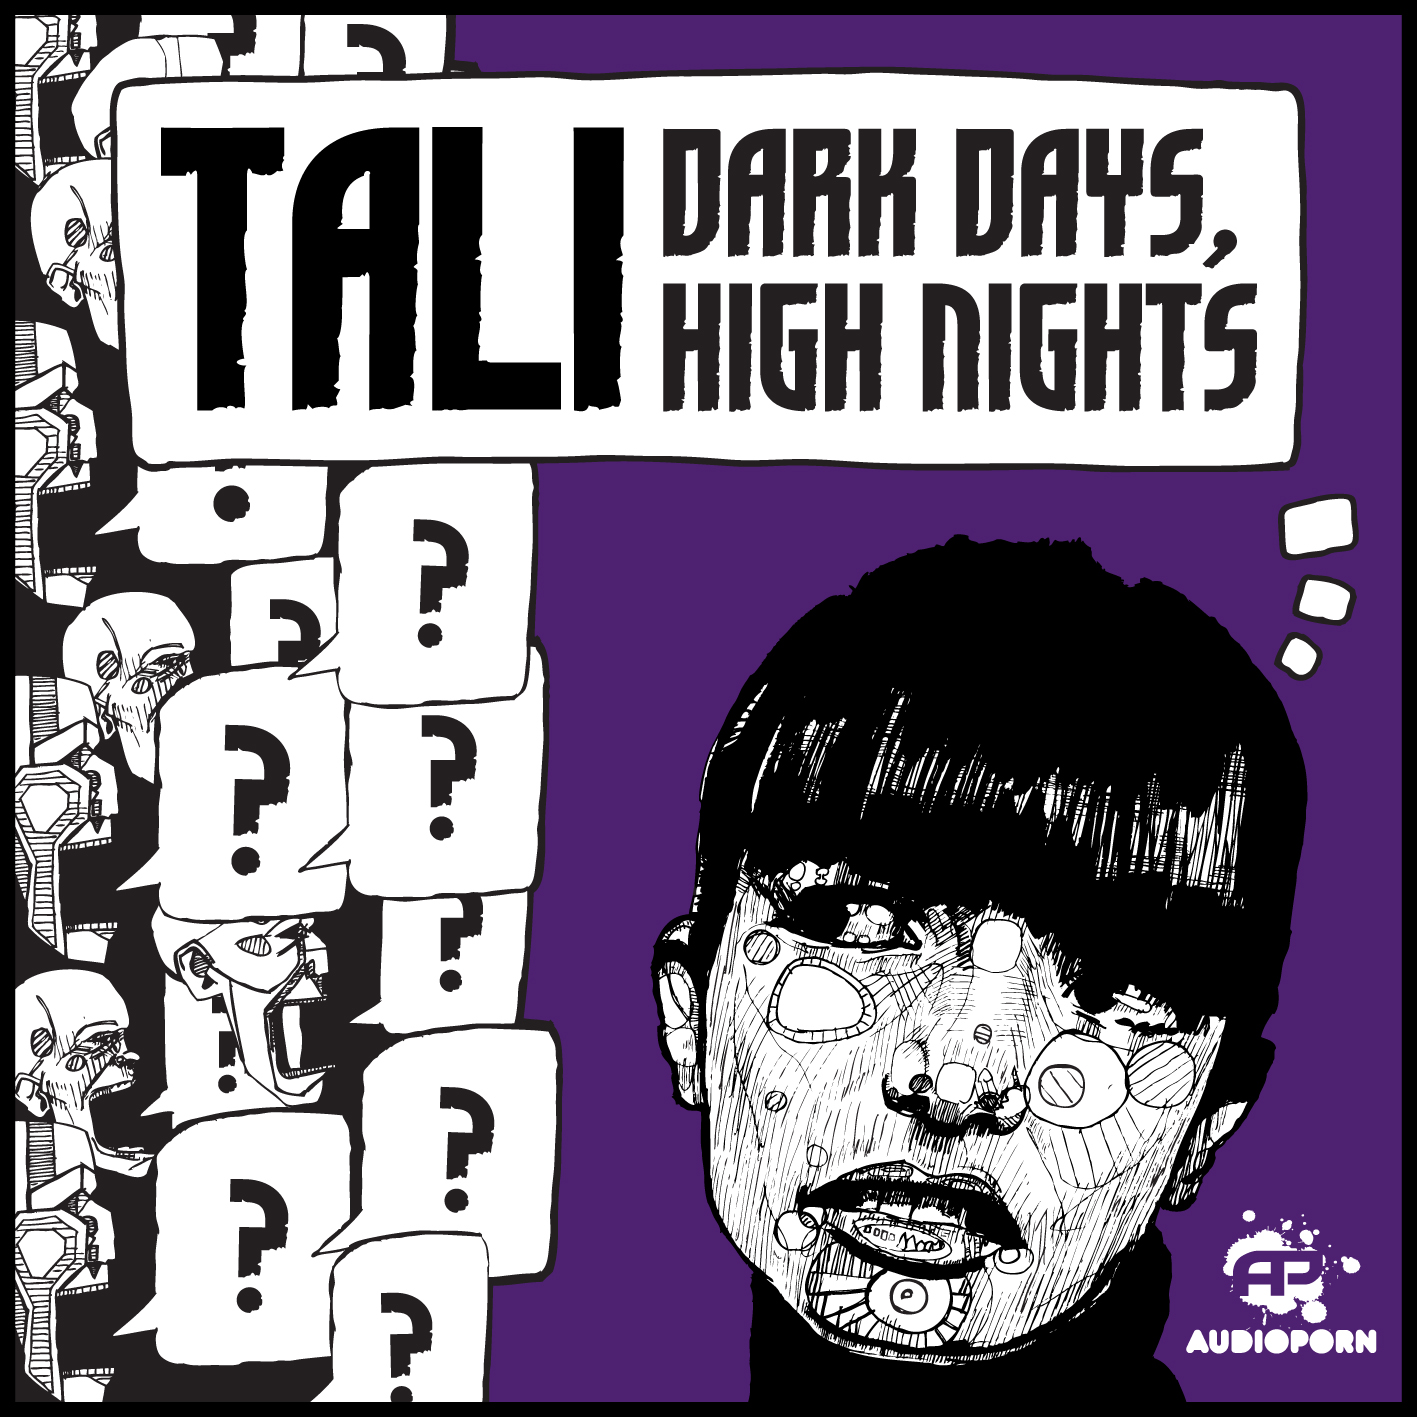 Tali - Dark Days, High Nights